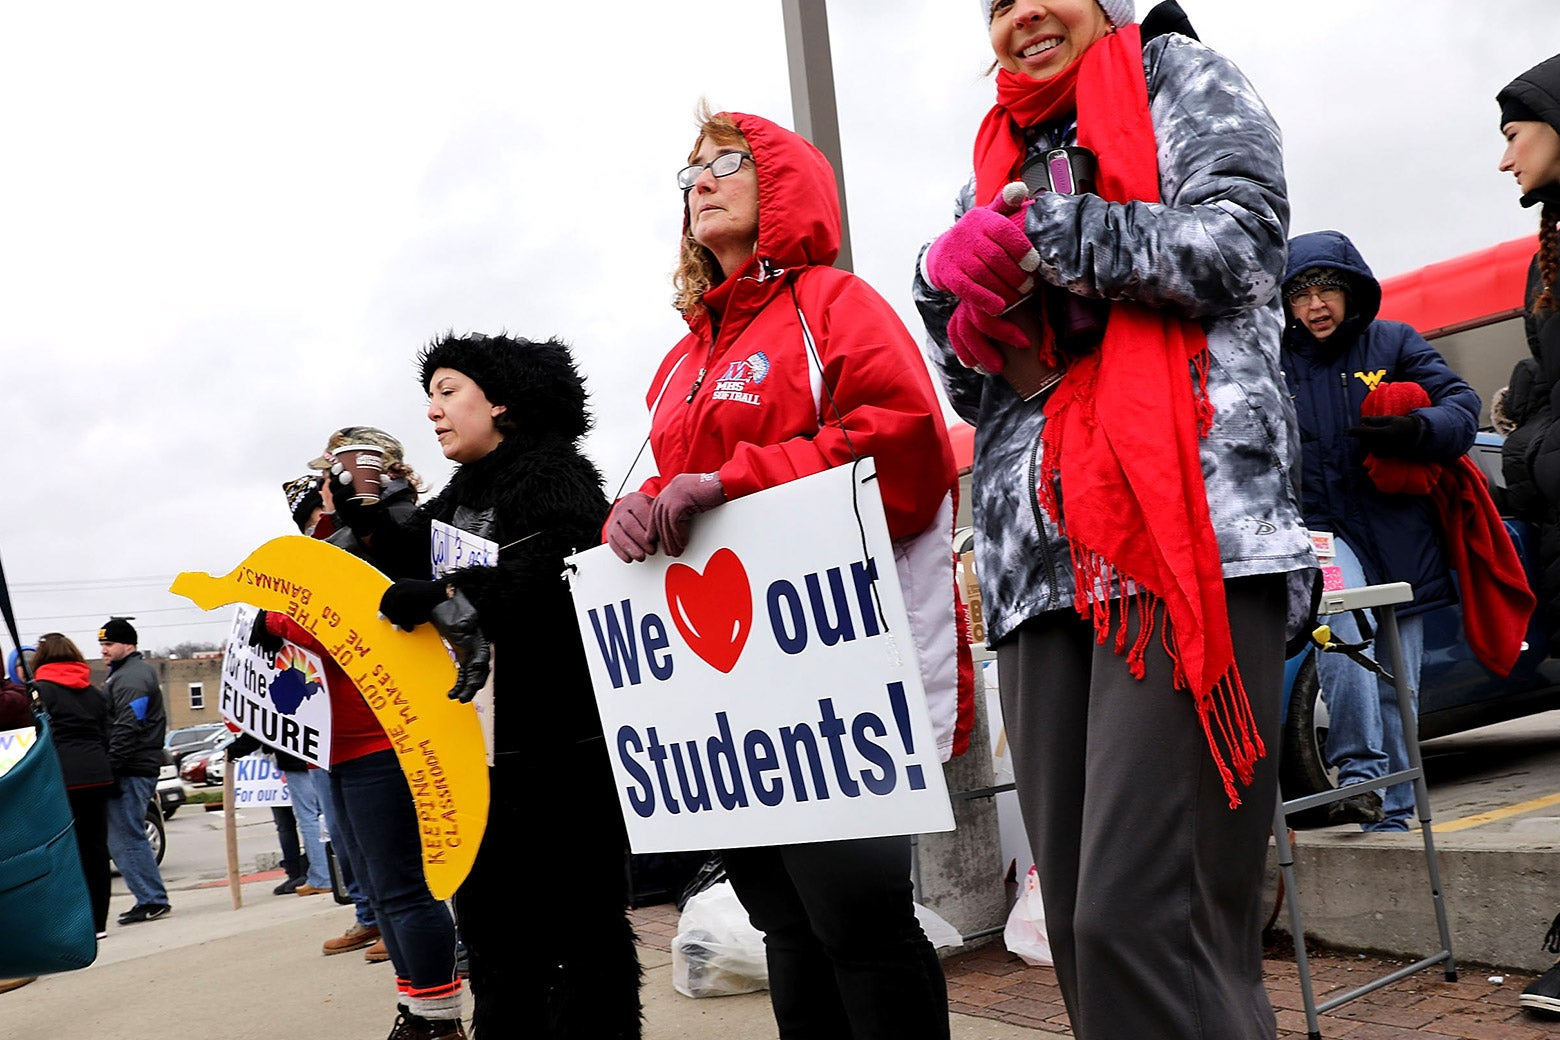 West Virginia teachers, students and supporters hold signs on a Morgantown street as they continue their strike on March 2, 2018 in Morgantown, West Virginia.